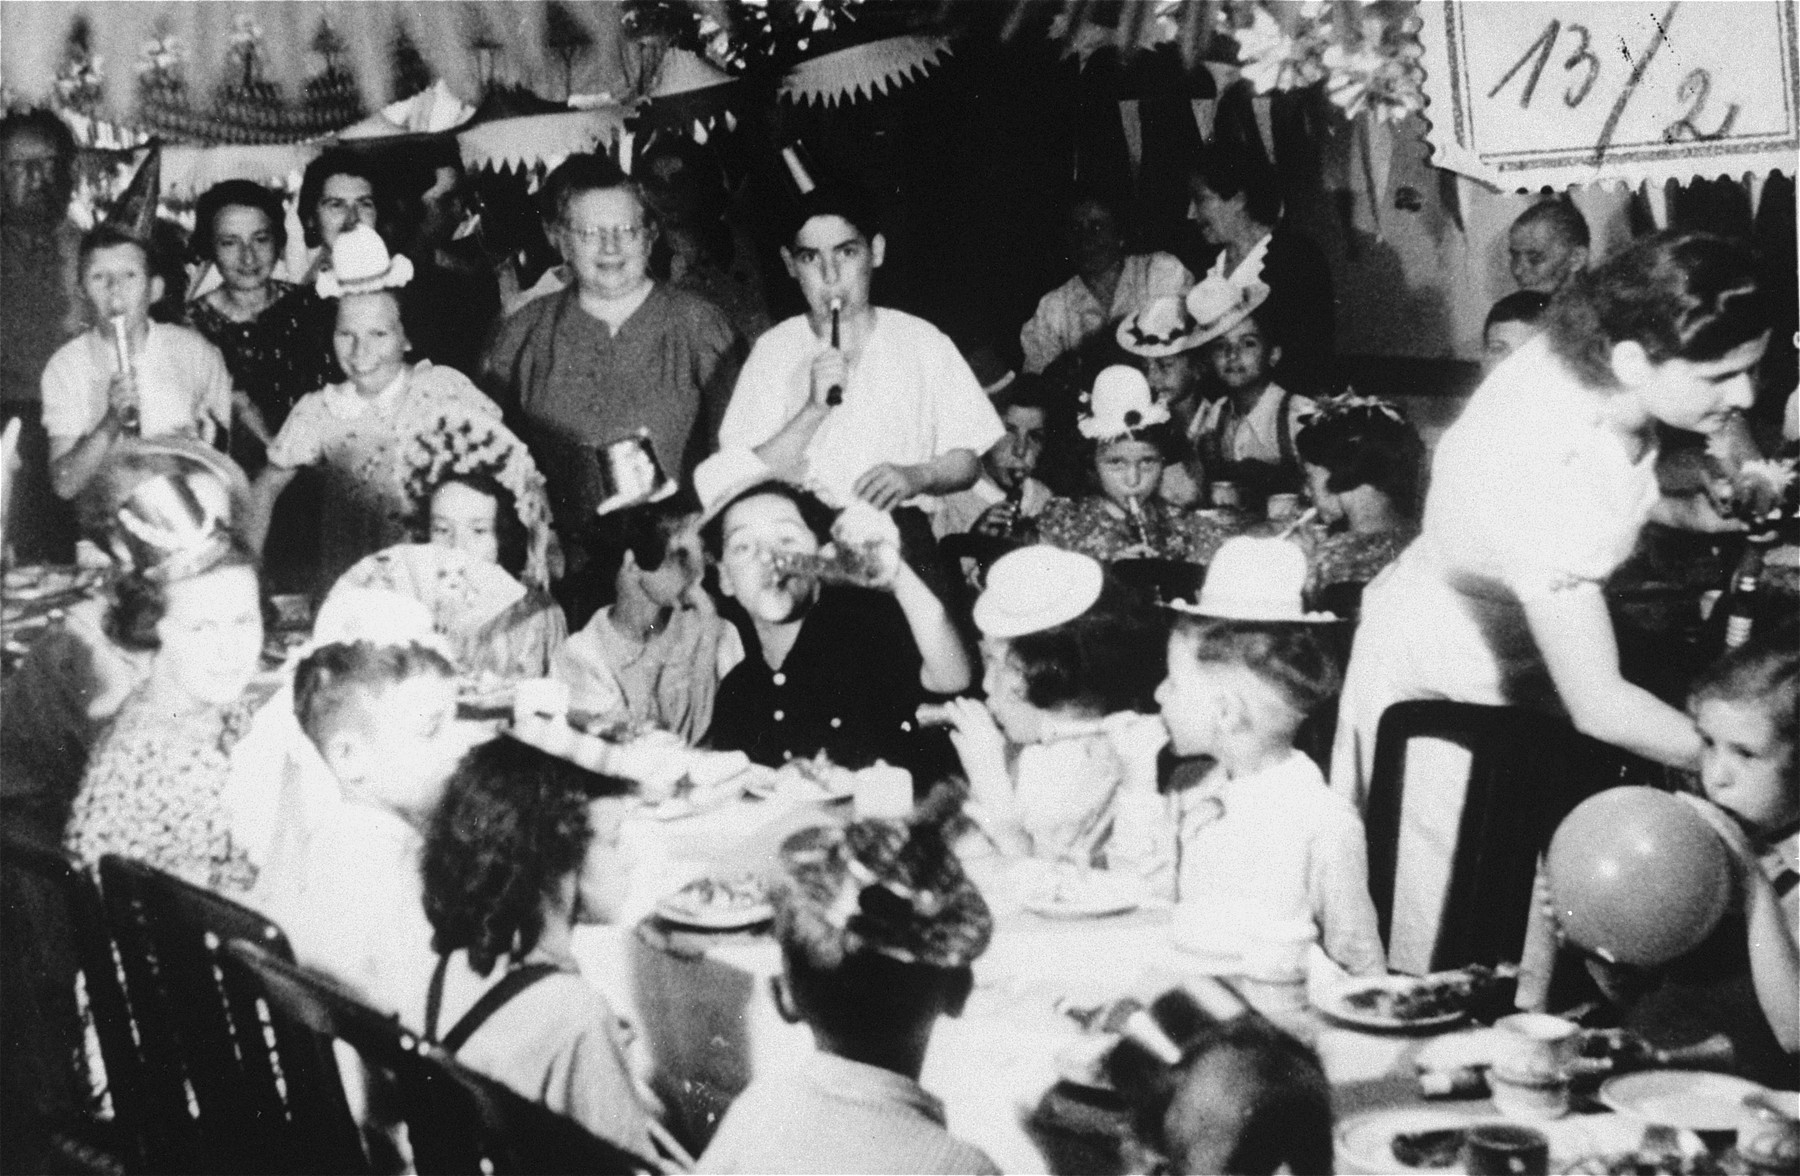 Children attend a party on board the MS St. Louis celebrating the fact that Belgium, France, Great Britain and the Netherlands agreed to give visas to the passengers.    Heinz Goldstein is pictured in the center, blowing a horn.  Also pictured are Ruth Friedman, Herbert Karliner, Ruth Karliner, and Moser.